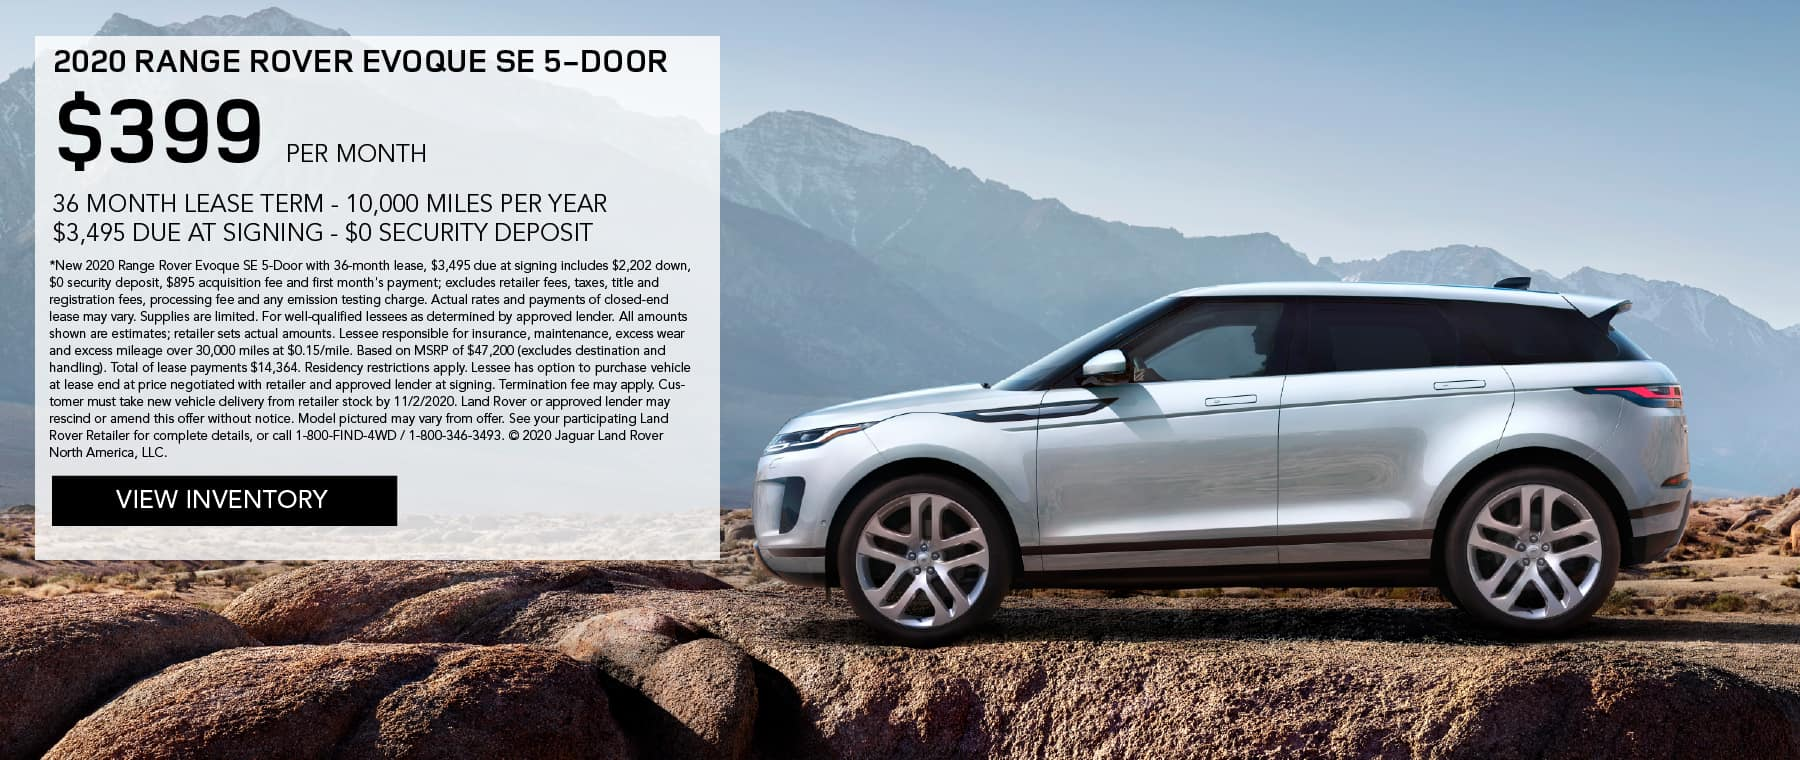 2020 RANGE ROVER EVOQUE SE 5-DOOR. $399 PER MONTH. 36 MONTH LEASE TERM. $3,495 CASH DUE AT SIGNING. $0 SECURITY DEPOSIT. 10,000 MILES PER YEAR. EXCLUDES RETAILER FEES, TAXES, TITLE AND REGISTRATION FEES, PROCESSING FEE AND ANY EMISSION TESTING CHARGE. ENDS 11/2/2020. VIEW INVENTORY. SILVER RANGE ROVER EVOQUE DRIVING DOWN ROAD IN MOUNTAINS.